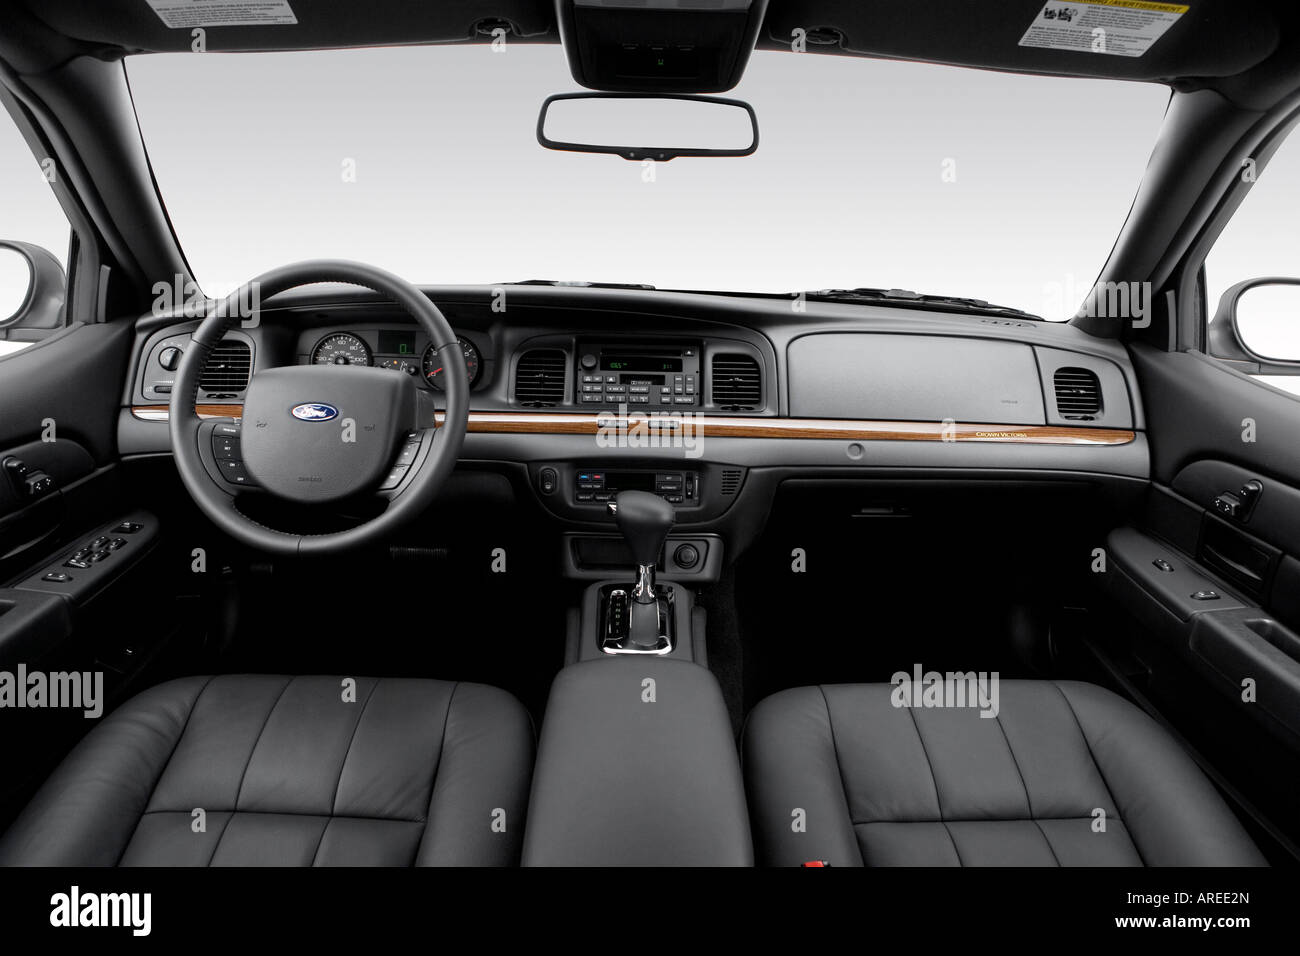 2006 ford crown victoria lx sport in gray dashboard center stock photo royalty free image. Black Bedroom Furniture Sets. Home Design Ideas